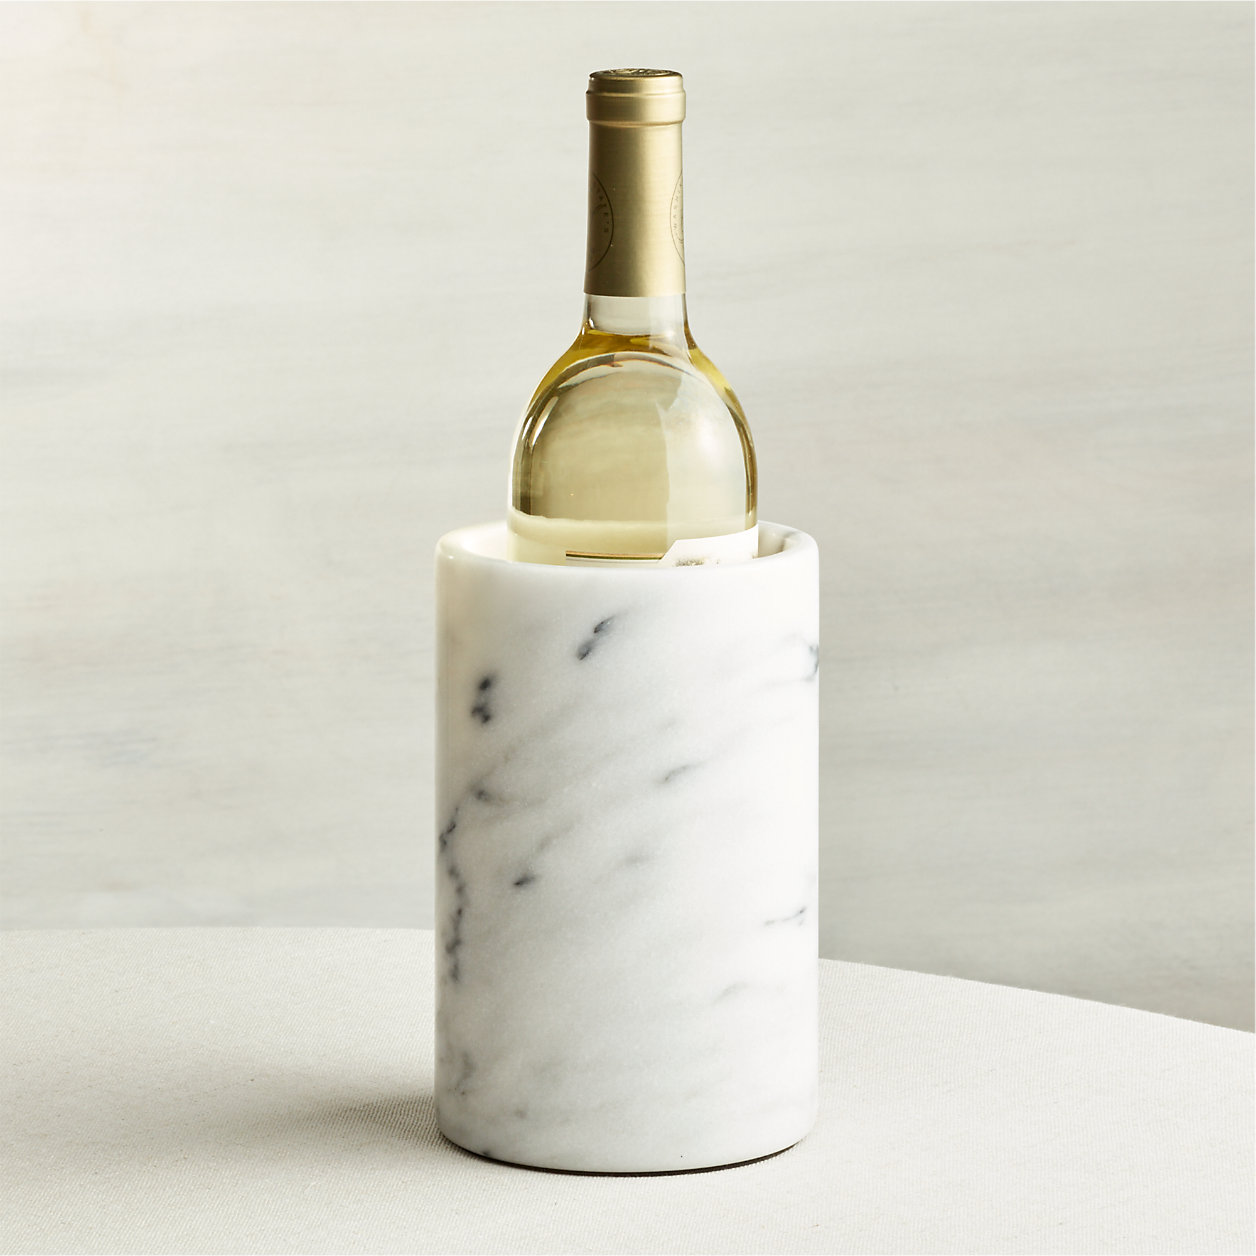 Marble wine chiller with bottle of wine inside